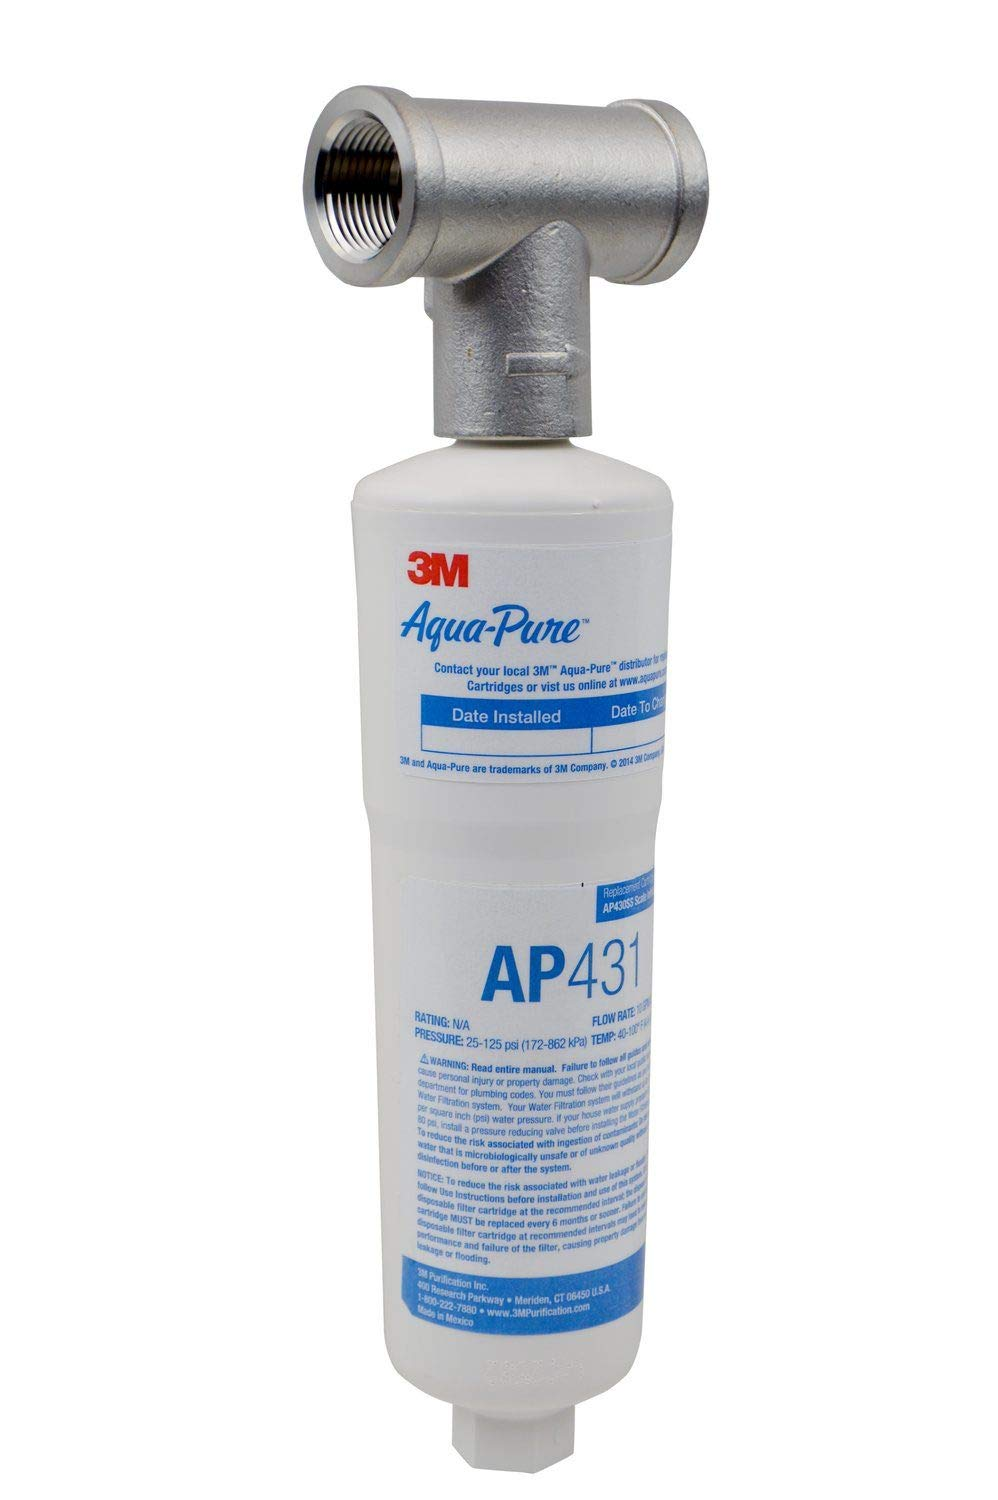 3M Aqua-Pure Whole House Scale Inhibition Inline Water System AP430SS, Helps Prevent Scale Build Up On Hot Water Heaters and Boilers by 3M Aqua-Pure